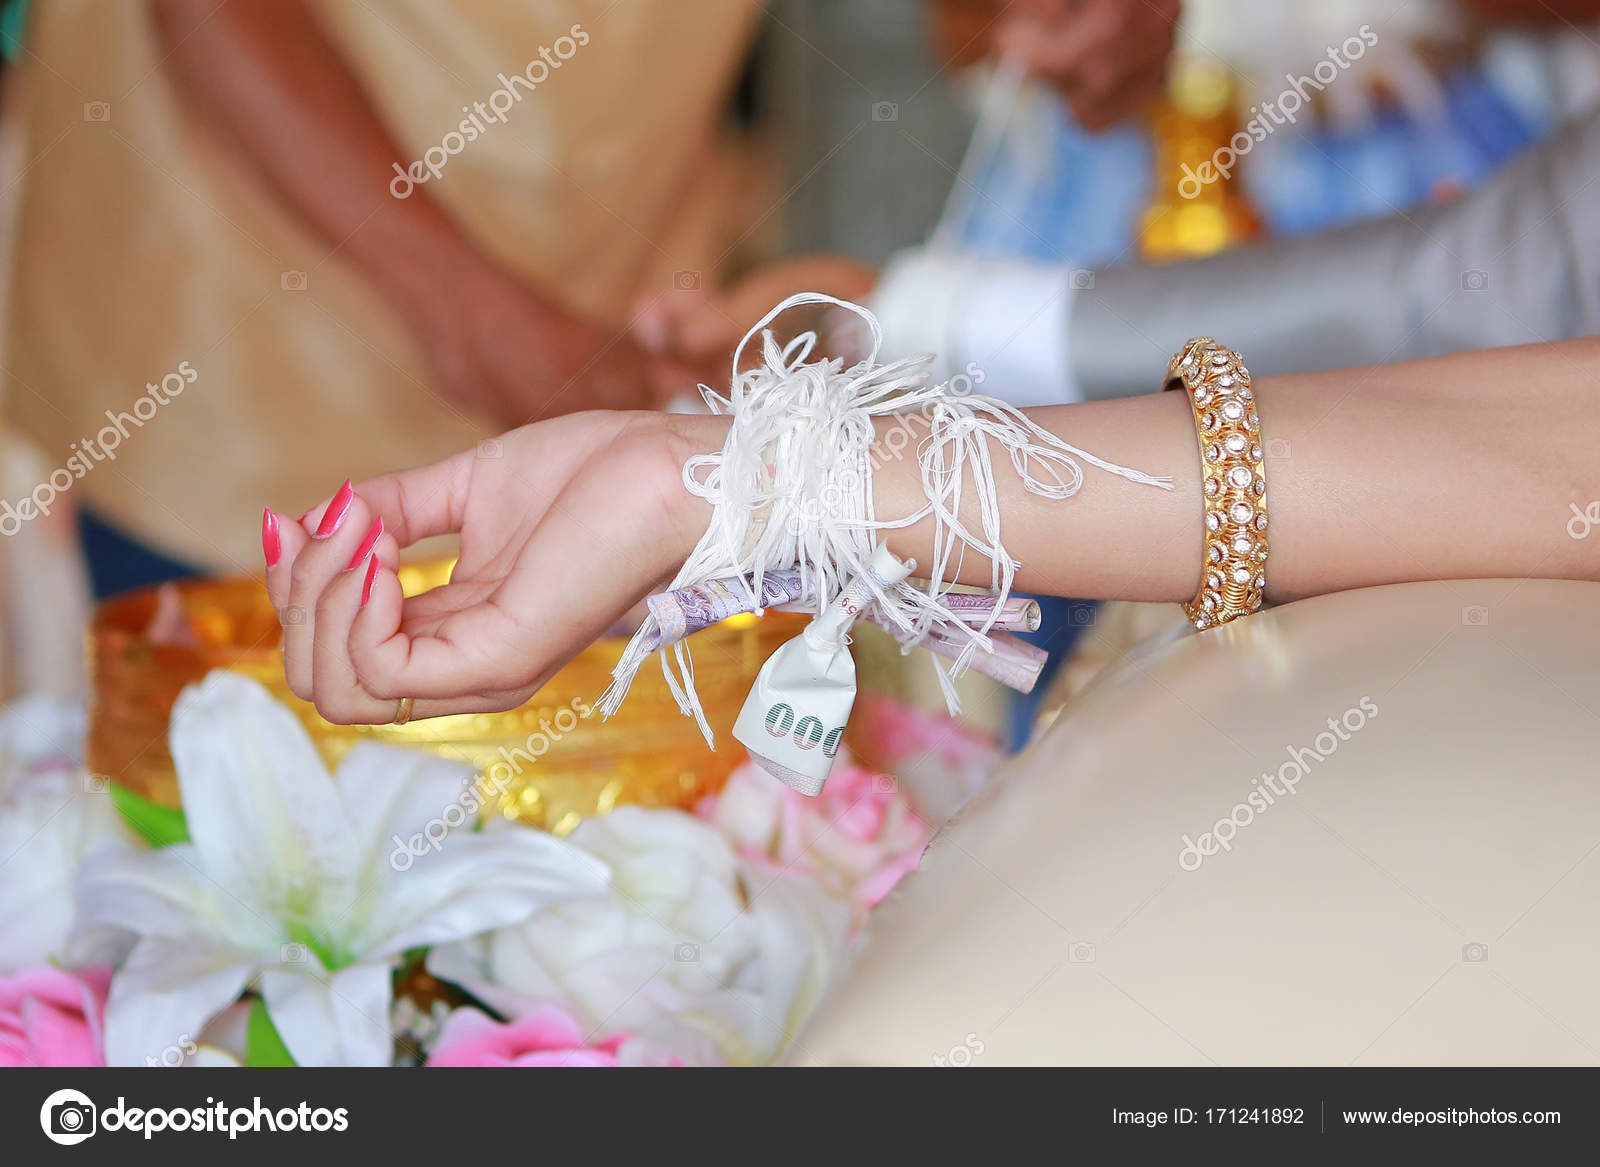 Thai wedding ceremony culture marriage bind holy thread with hand